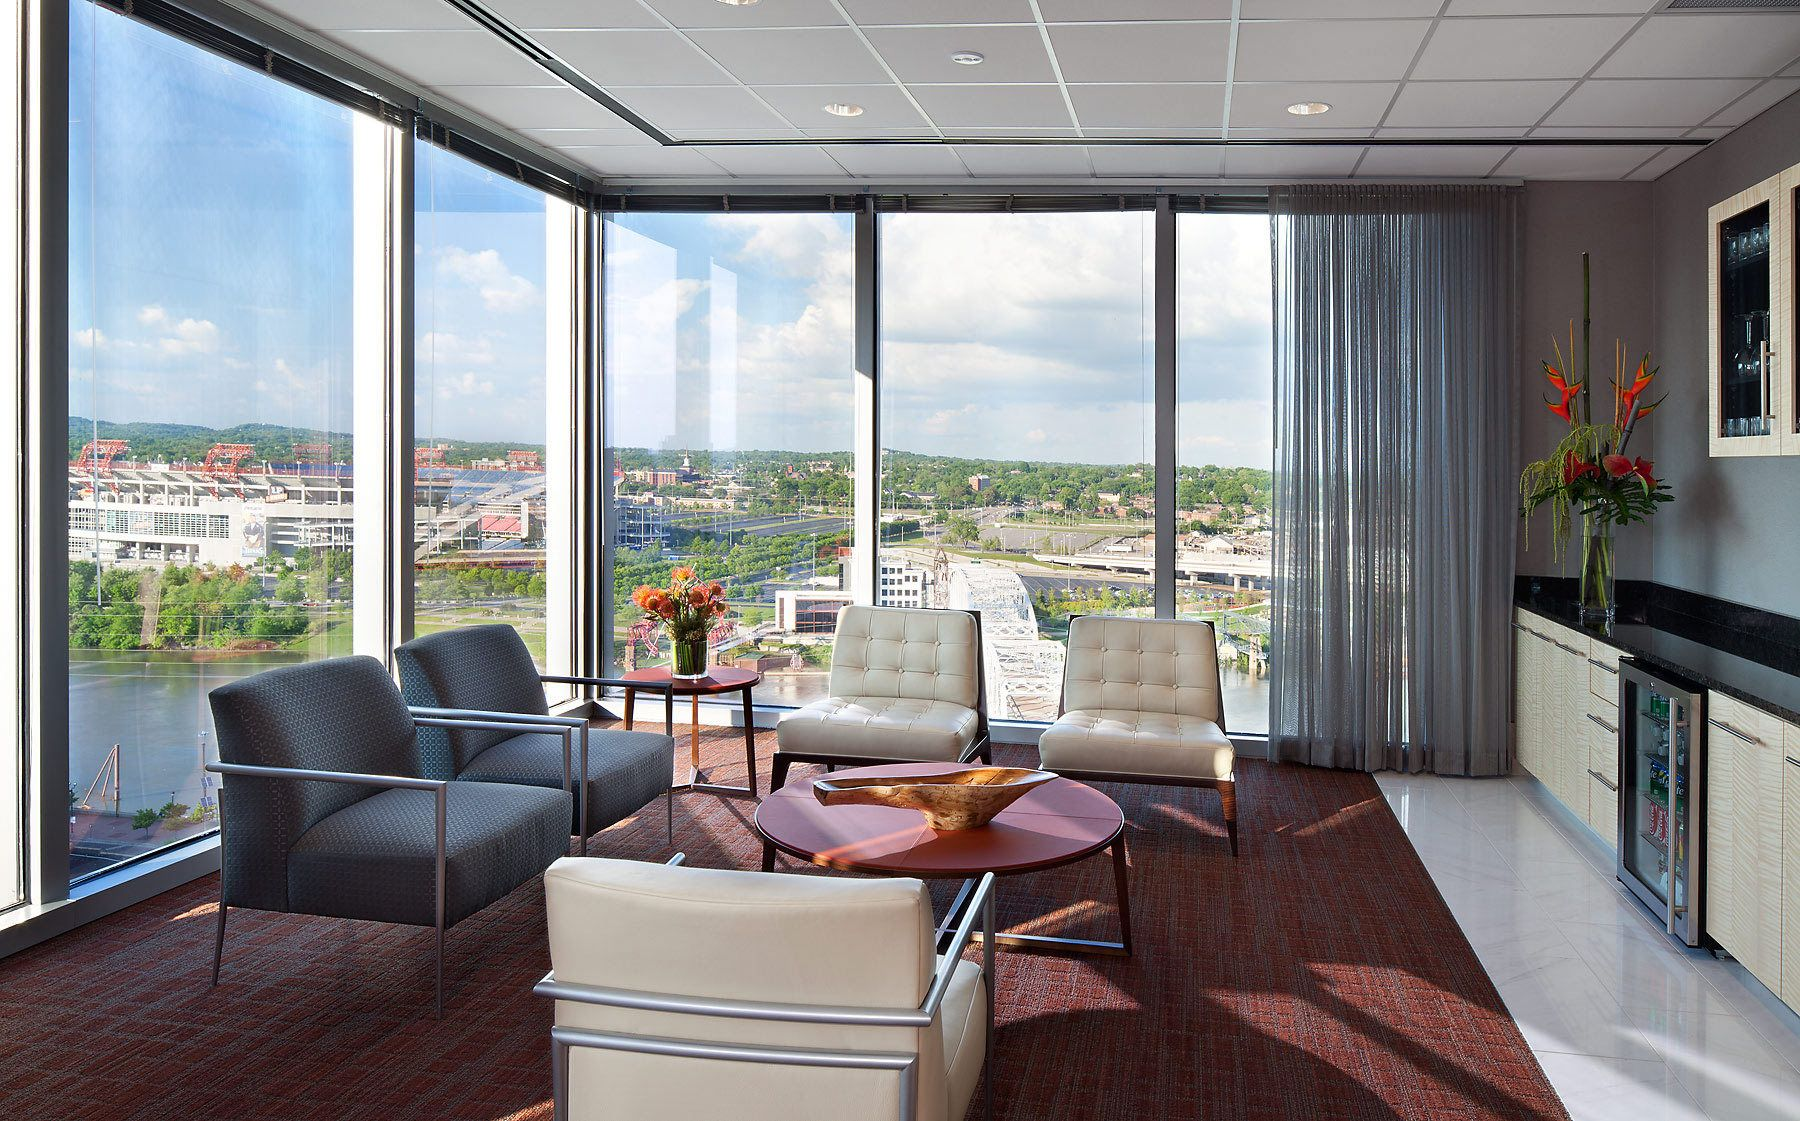 Butler Snow Law Firm | The Pinnacle at Symphony Place | Nashville, TNArchitect - STG DesignGeneral Contractor - Flow Construction Company, Inc.